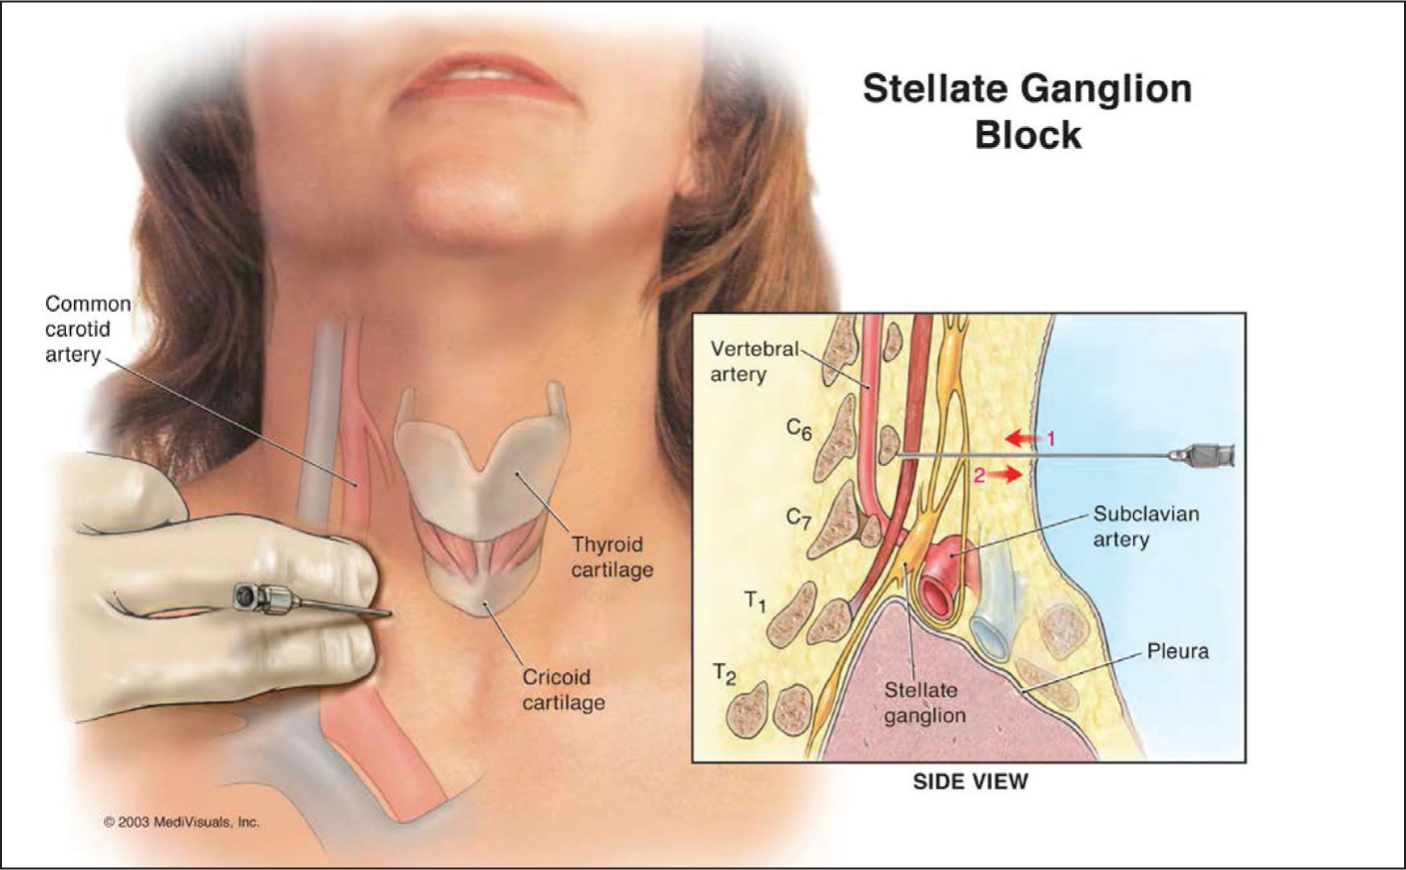 Figure 1. Stellate ganglion block technique.Image courtesy of Maryam